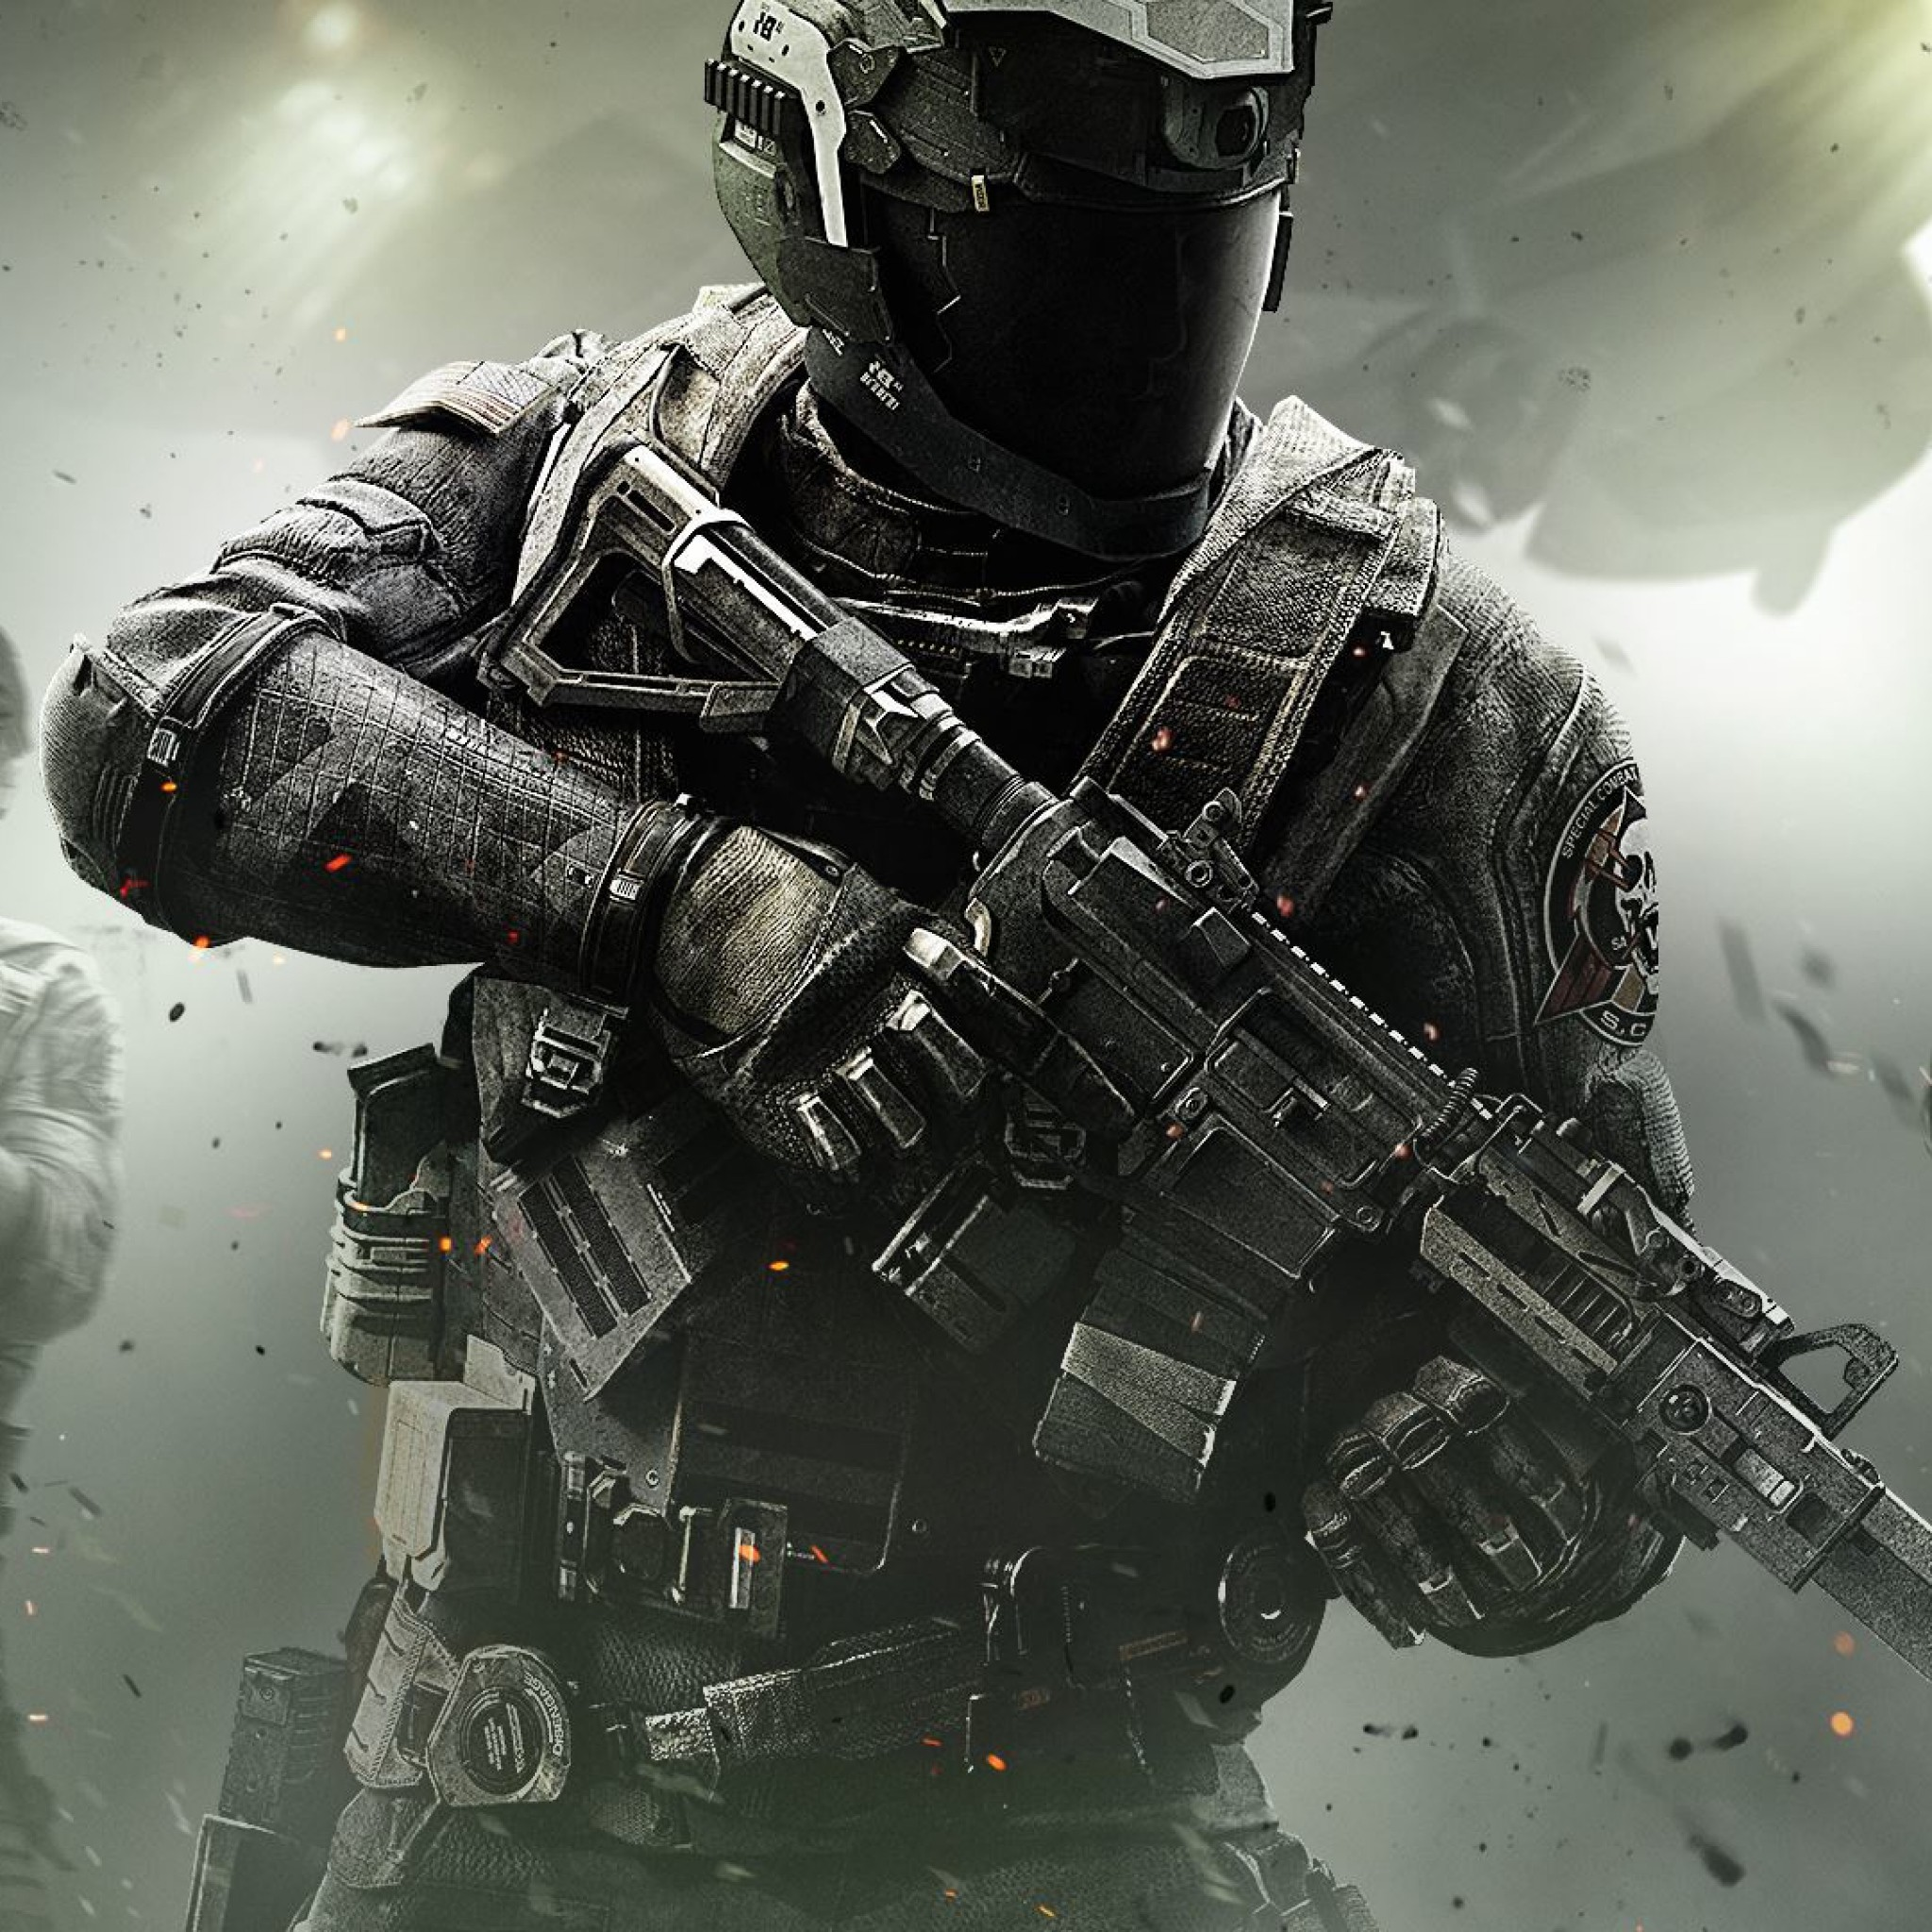 Cool Call of Duty Wallpapers (61+ images)